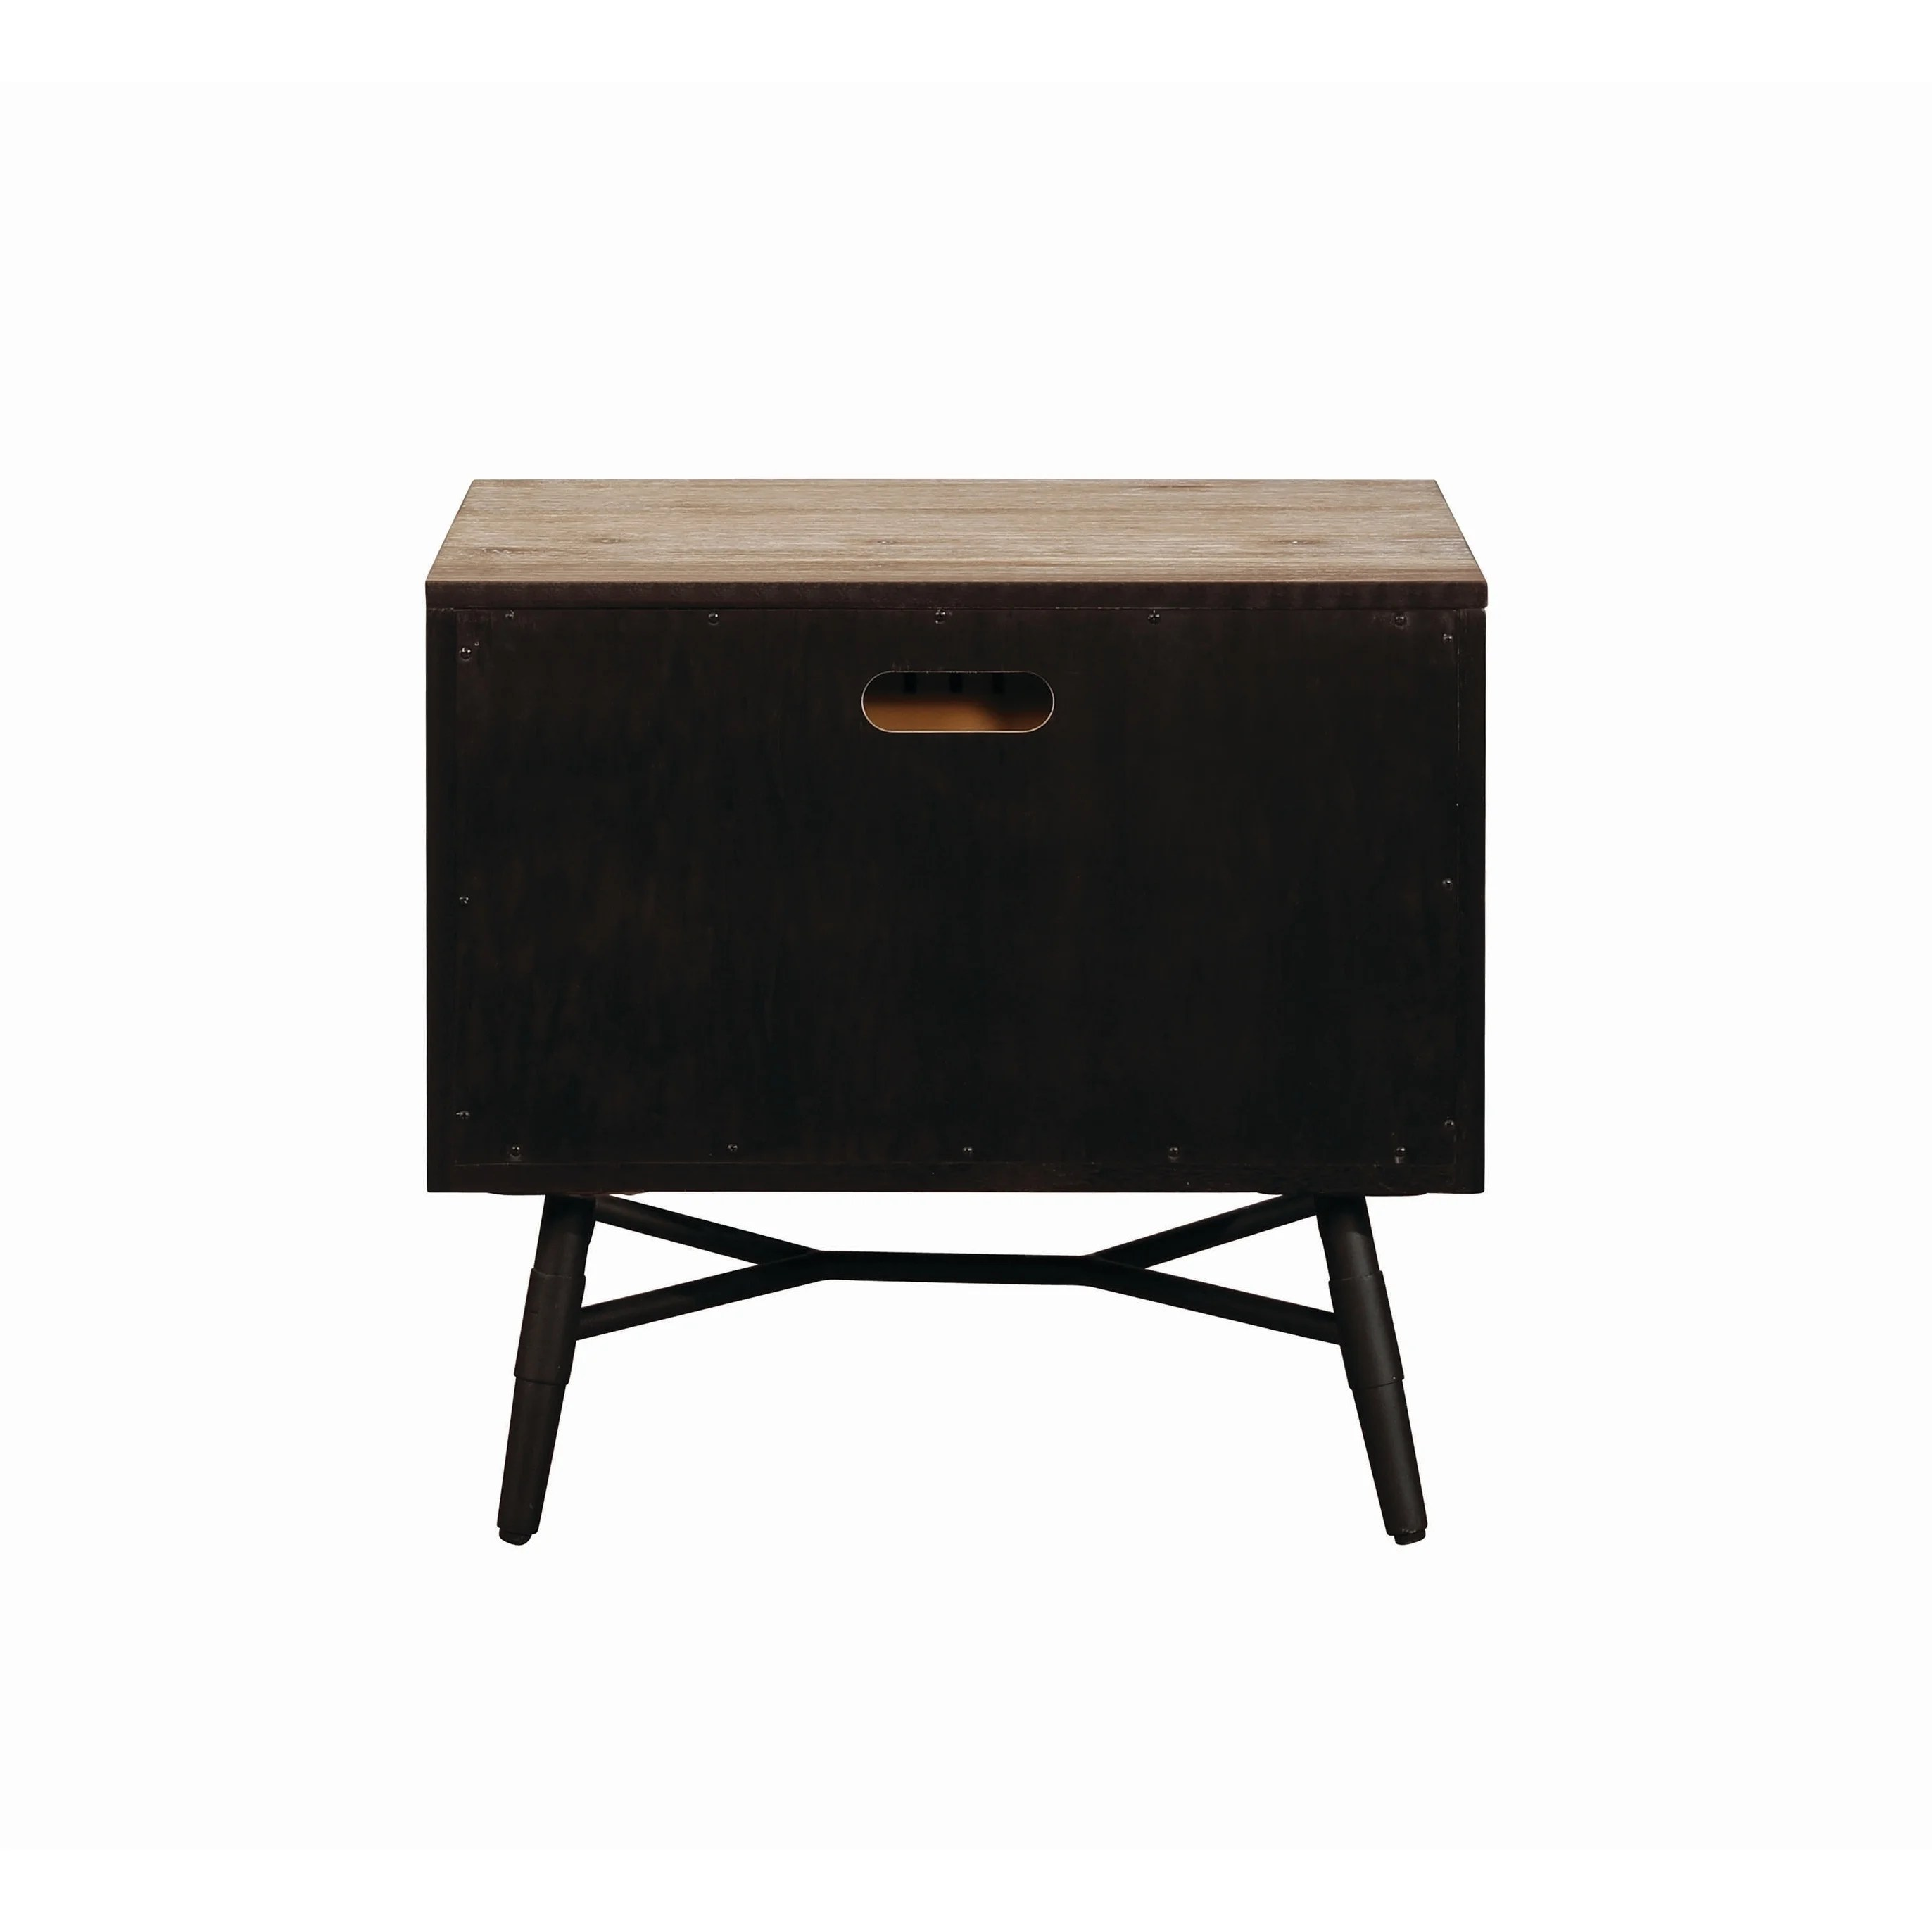 Wooden Nightstand With Two Drawers And Metal Angled Legs Brown